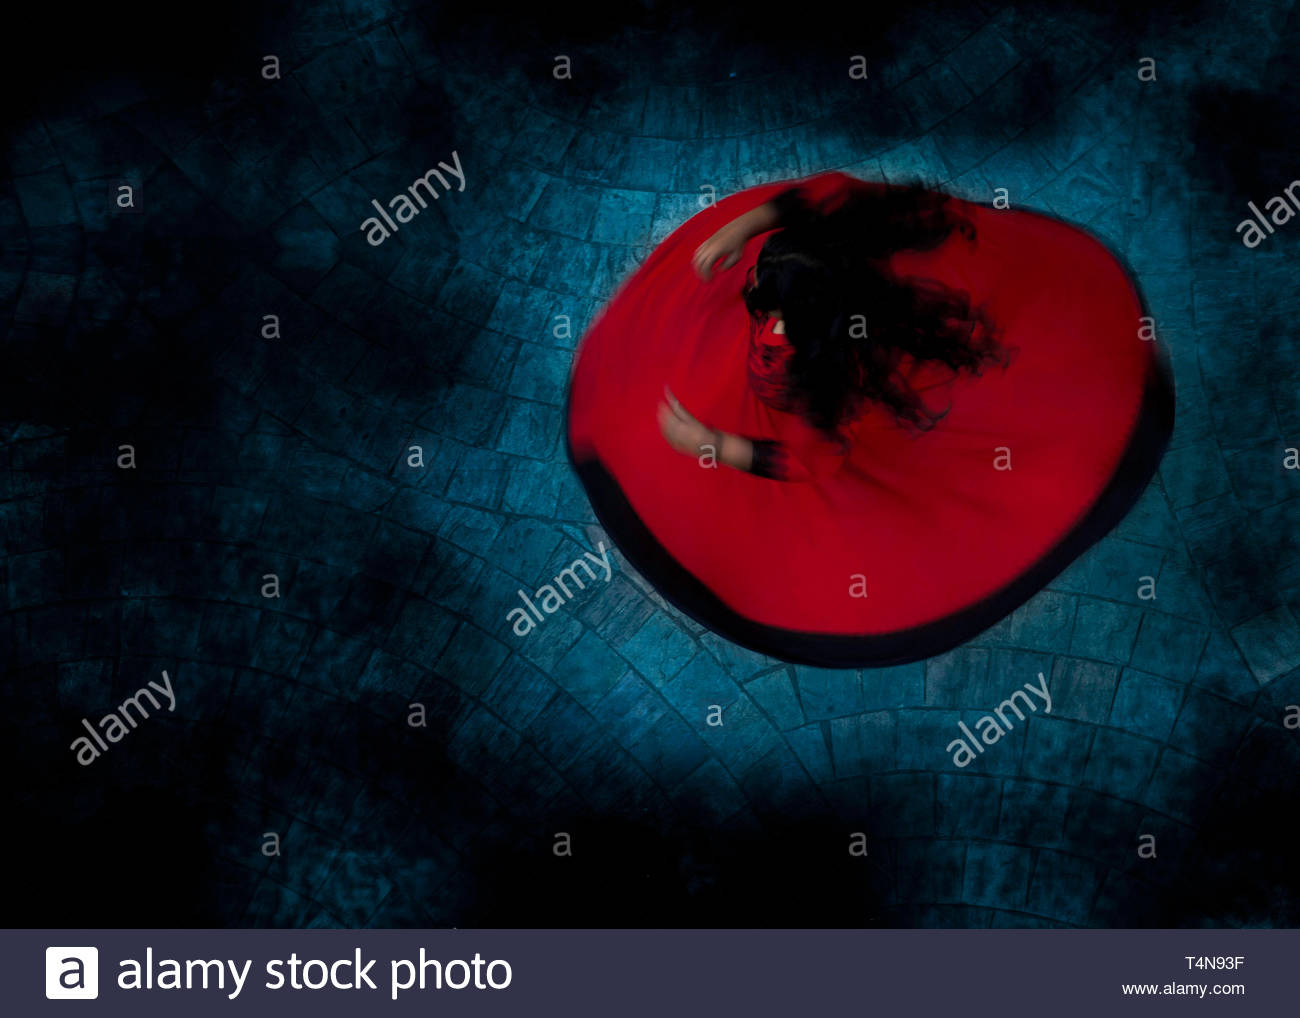 low-light photo of woman in red dress Stock Photo